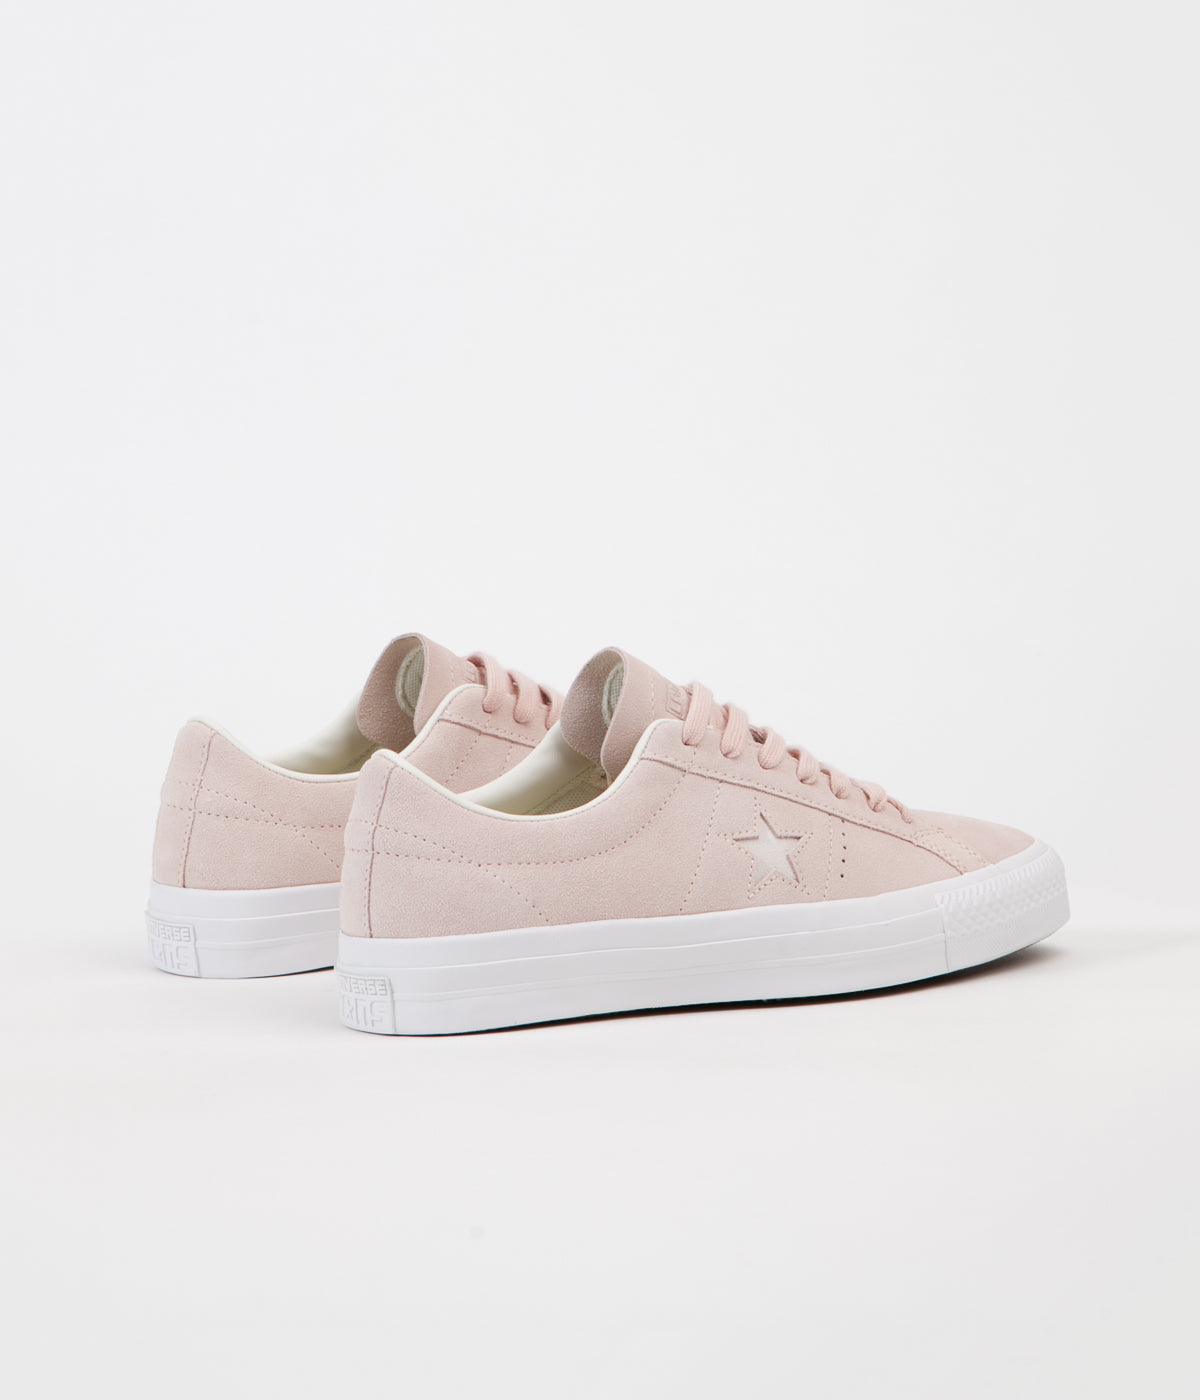 34380caae1930b ... Converse One Star Pro Ox Shoes - Dusk Pink   Egret   White ...